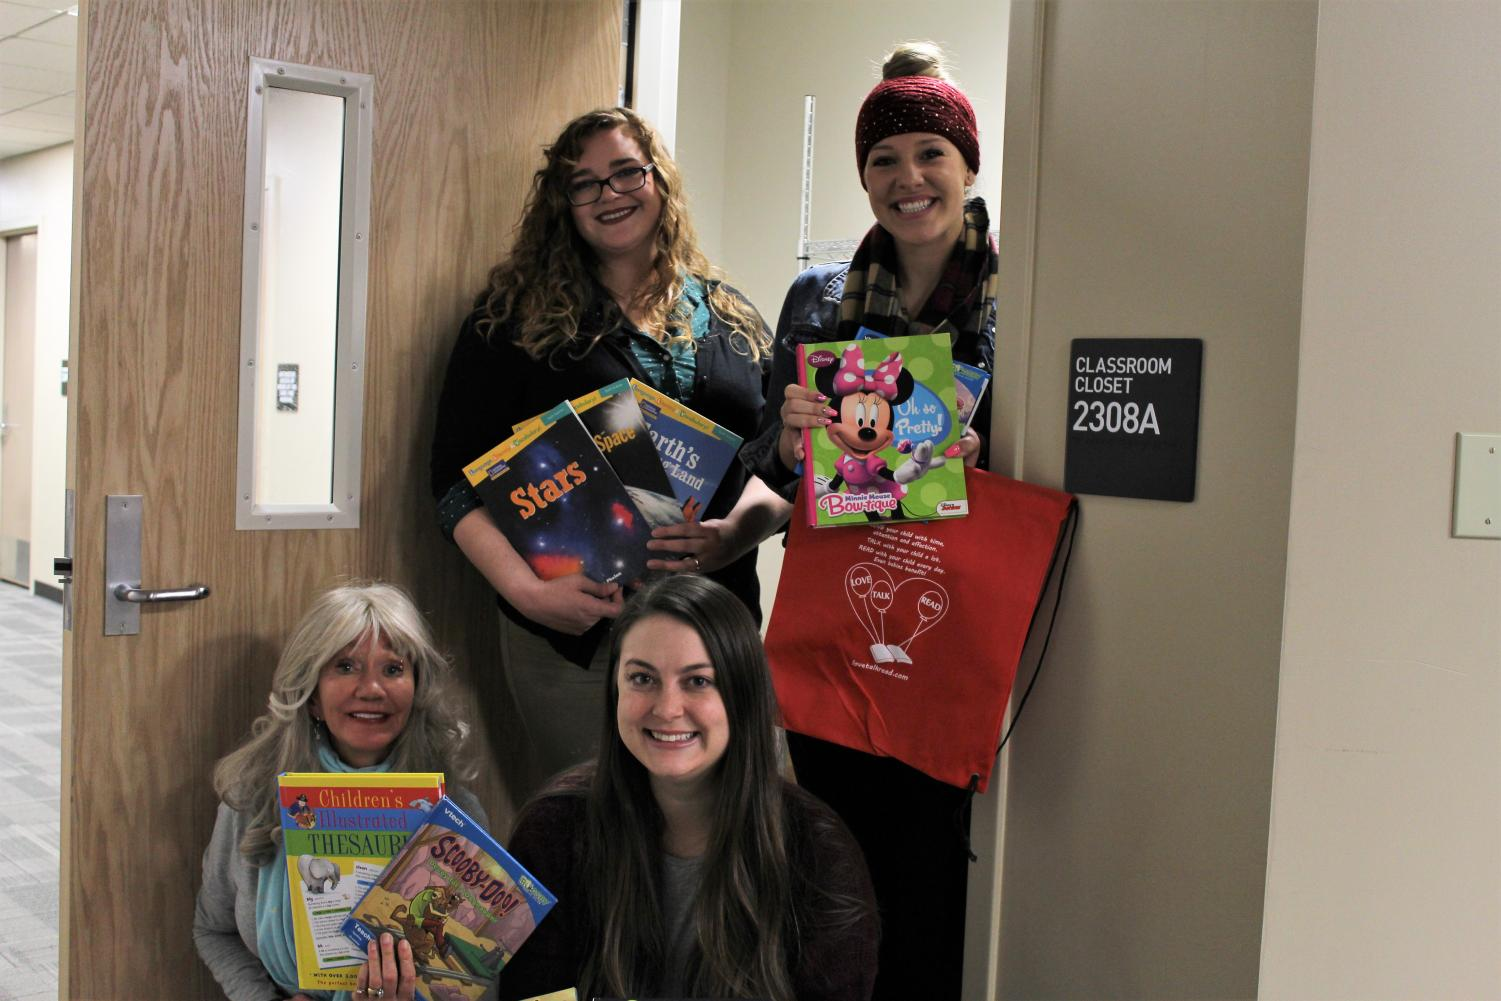 From+left%2C+professor+Celeste+Rosberry-McKibbin%2C+Mary+Persons%2C+Kirstin+FitzGerald+and+Marisa+Dix+stand+in+the+doorway+of+the+book+donations+closet.+All+of+the+donations+are+stored+in+a+broom+closet+in+Folsom+hall+until+Persons+personally+drives+the+books+up+to+Paradise.